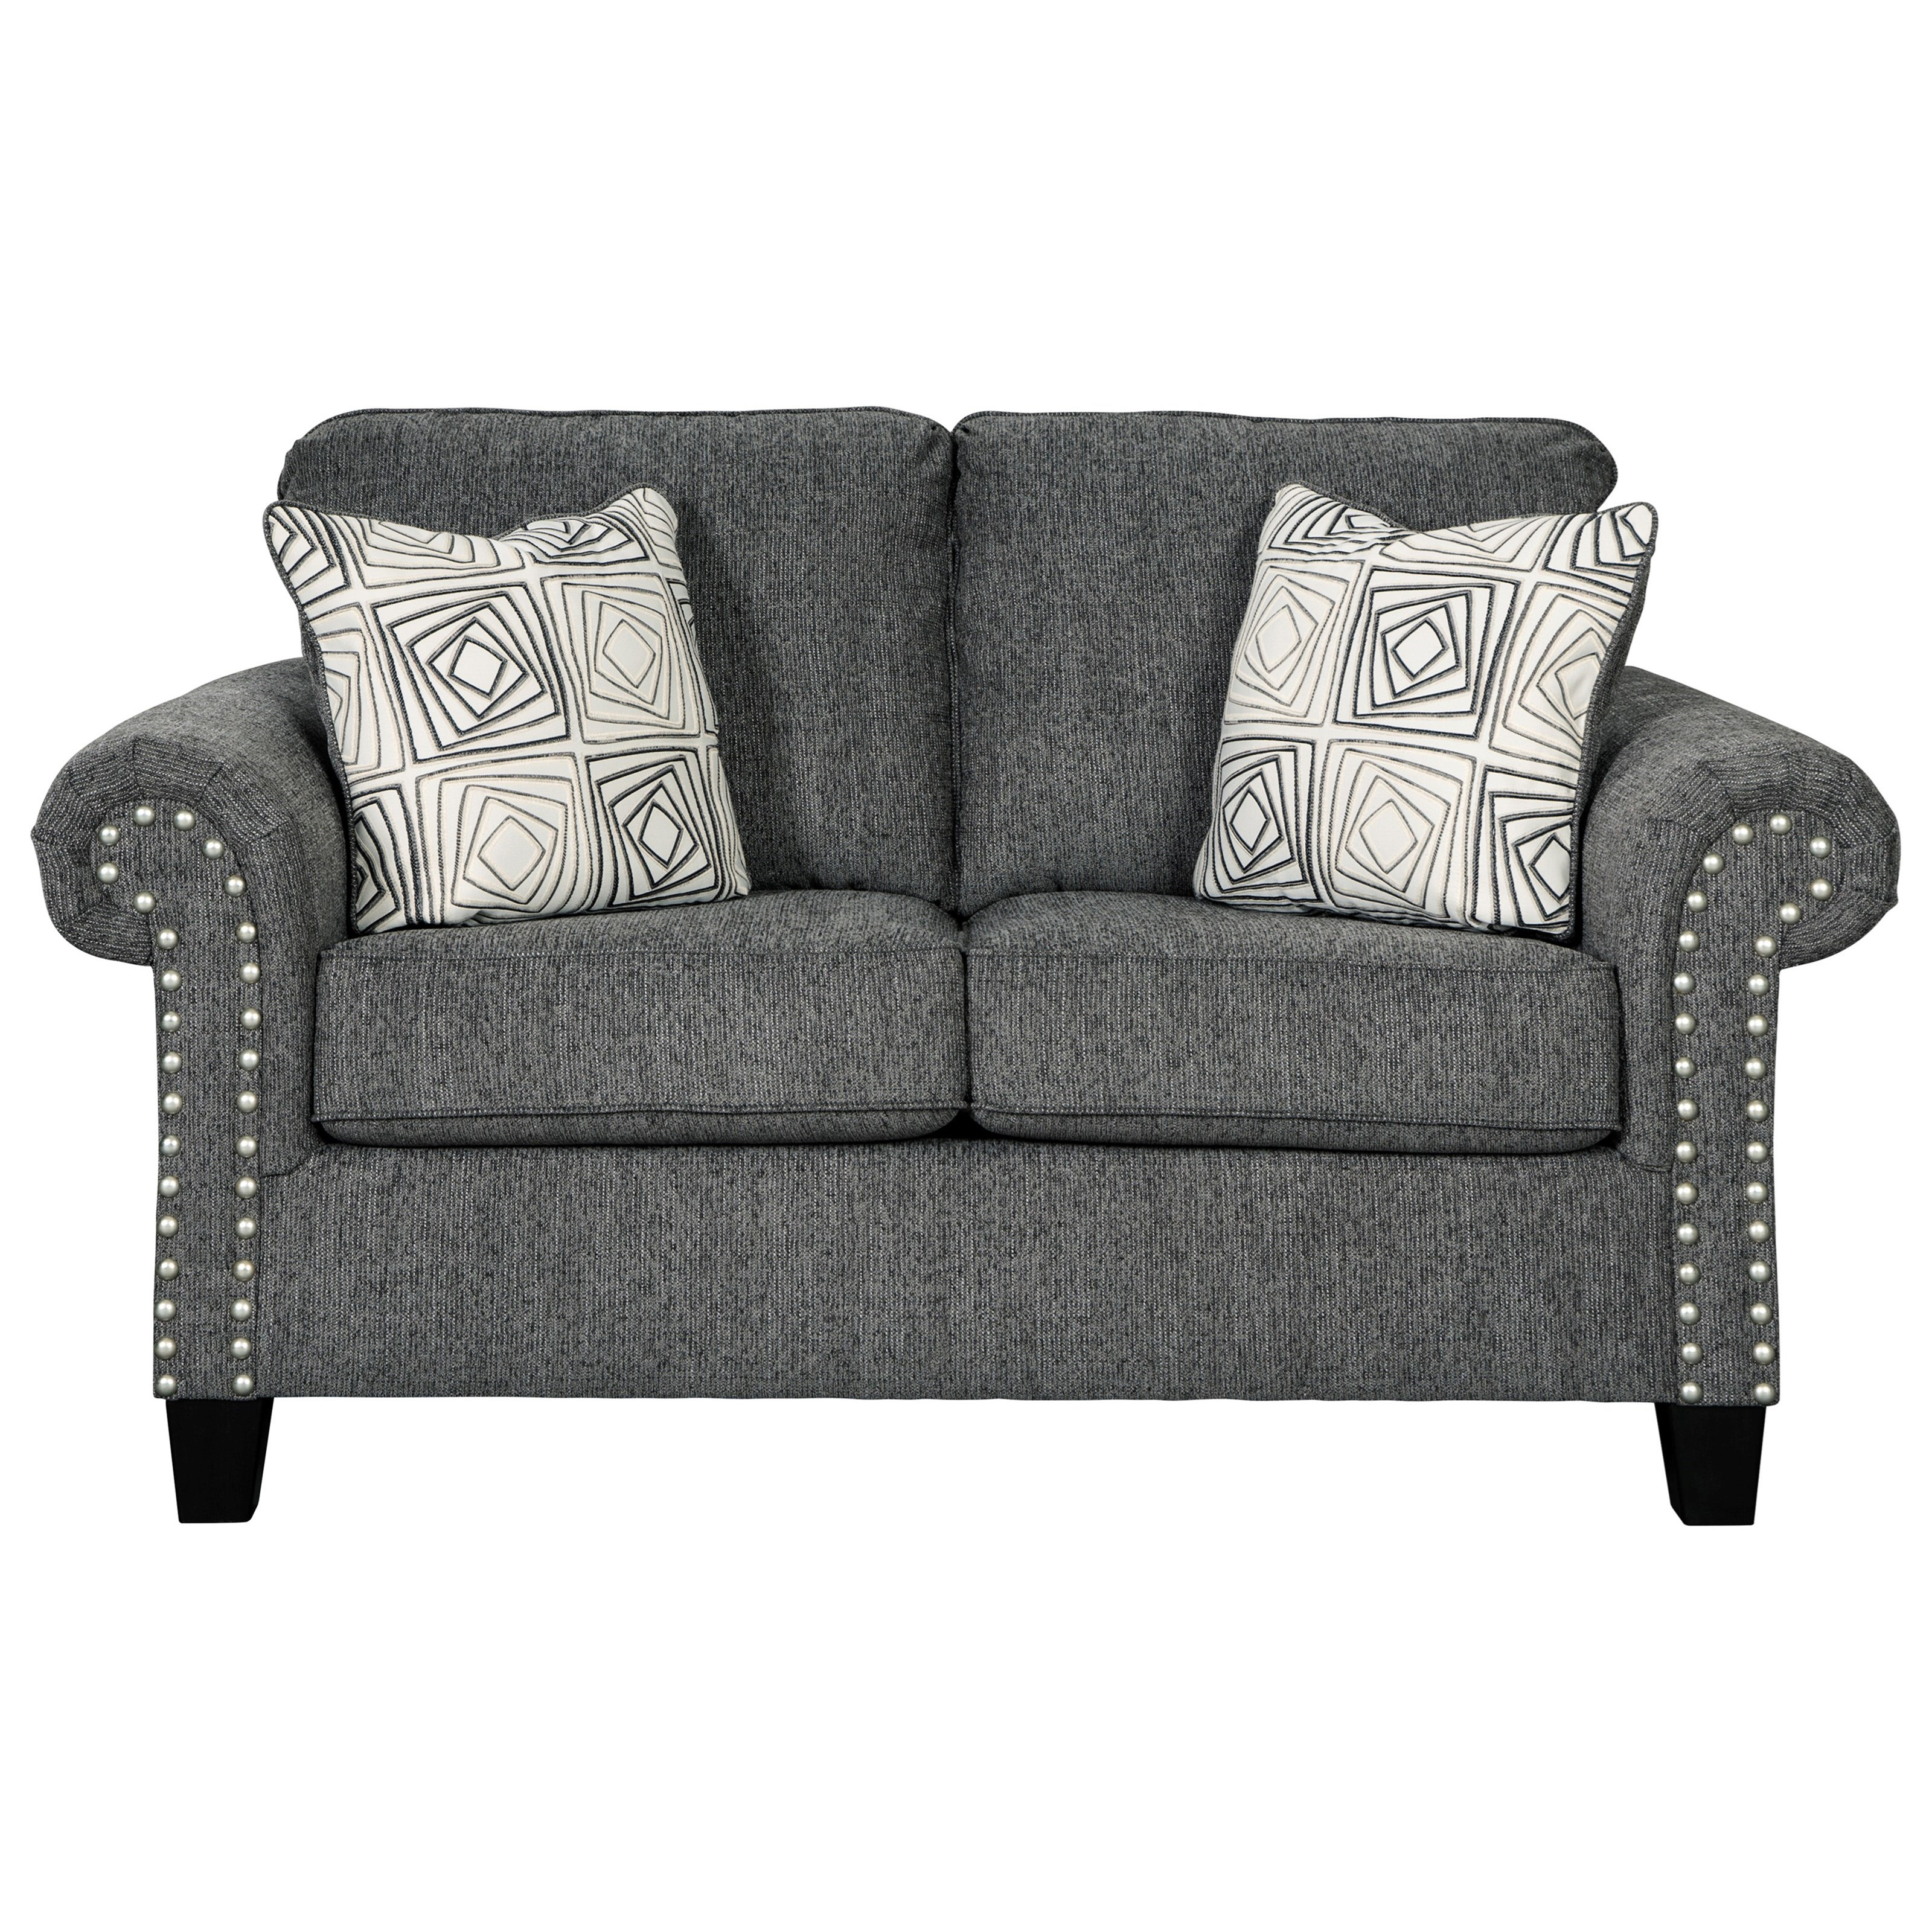 Agleno Loveseat by Benchcraft at Catalog Outlet